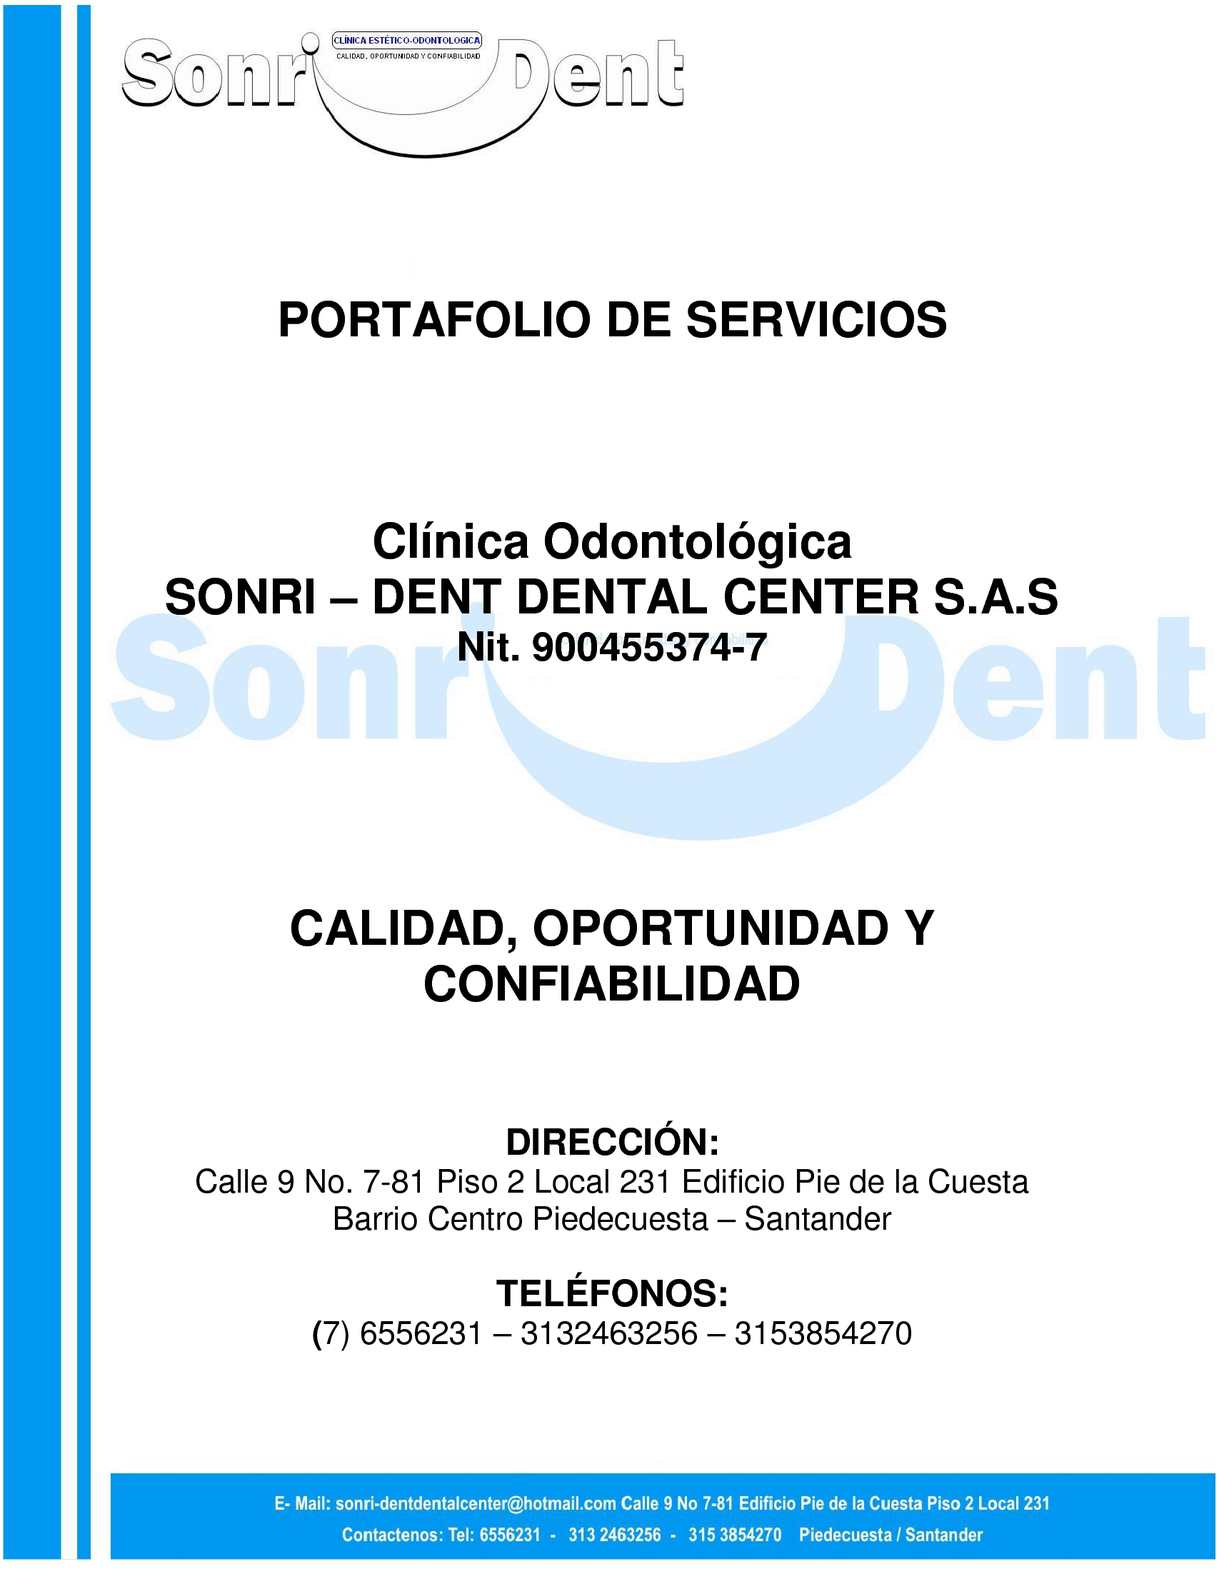 PORTAFOLIO DE SERVICIOS - SONRI-DENT DENTAL CENTER